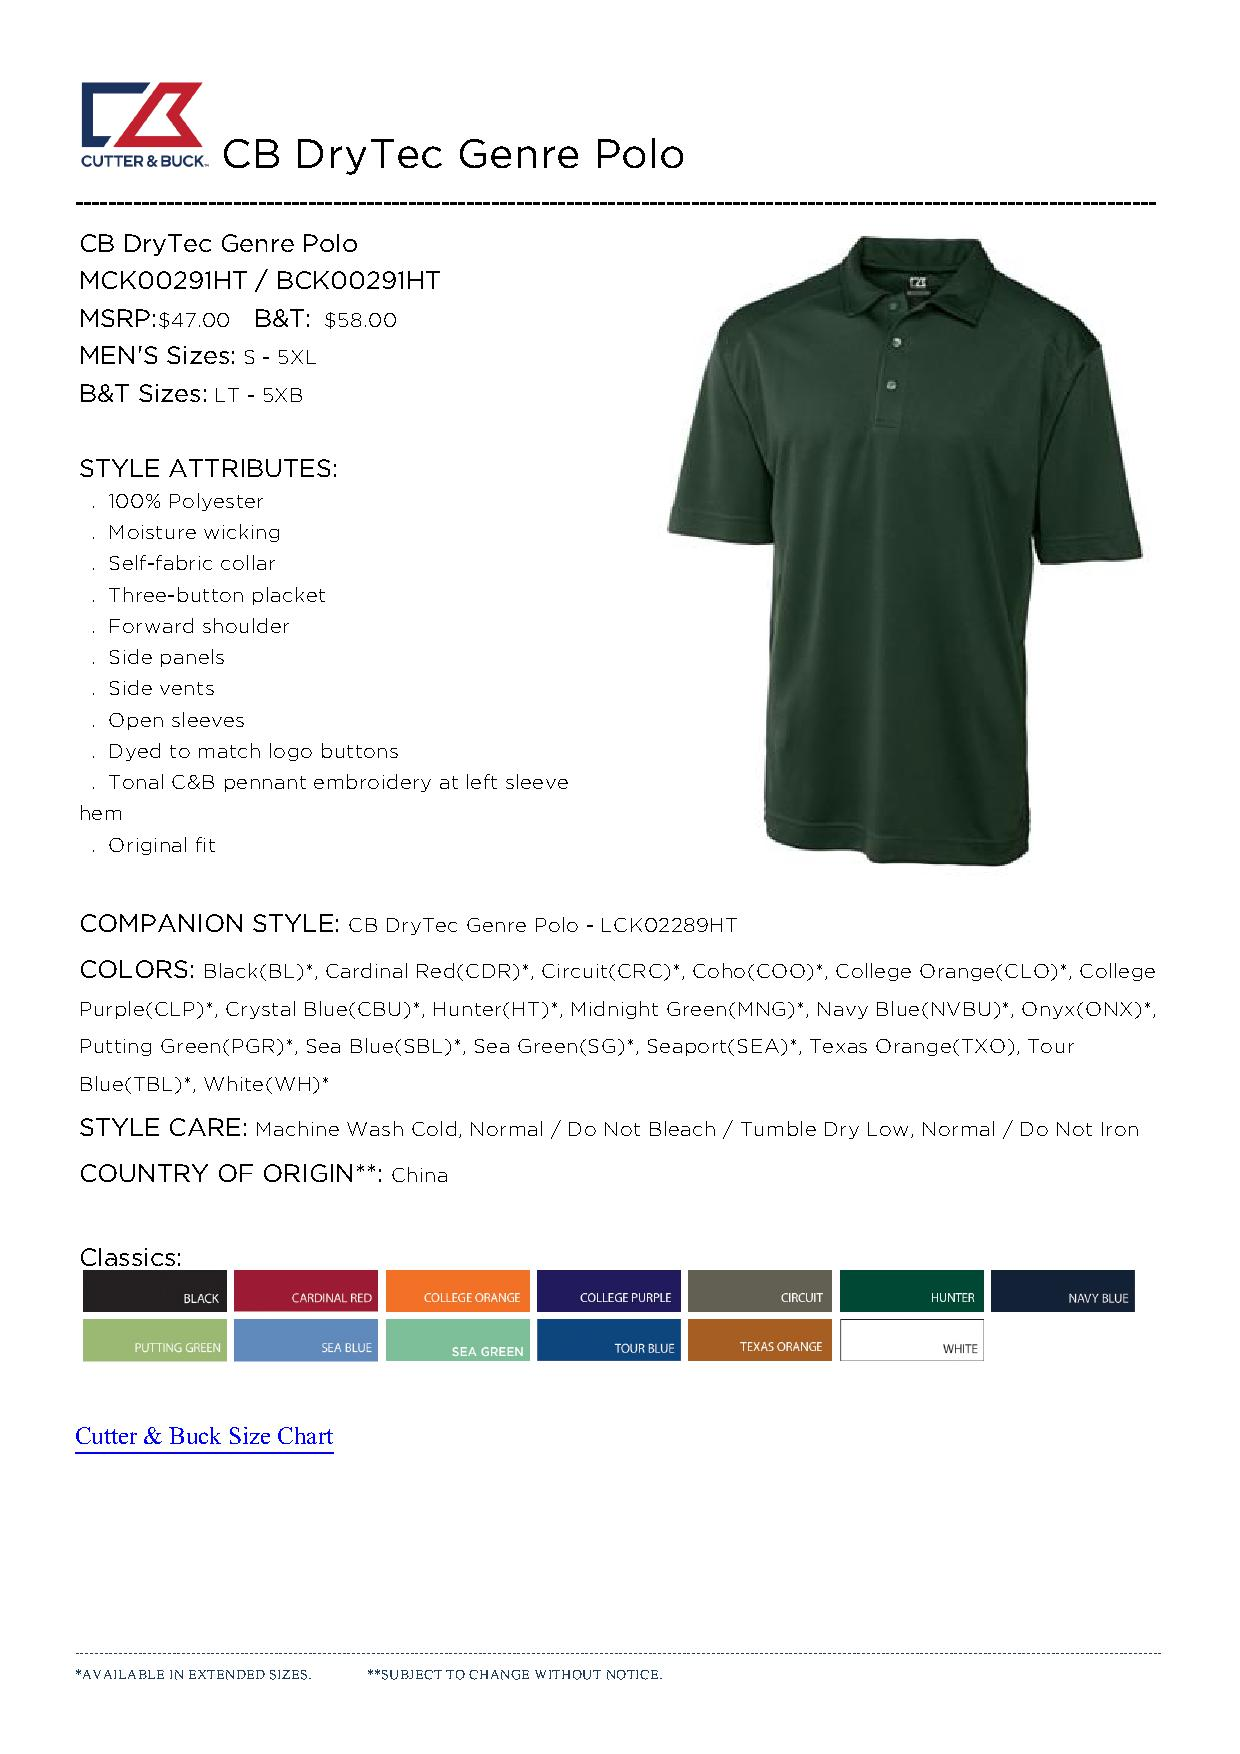 Cutter buck mck00291 men 39 s cb drytec genre polo for Cutter buck polo shirt size chart